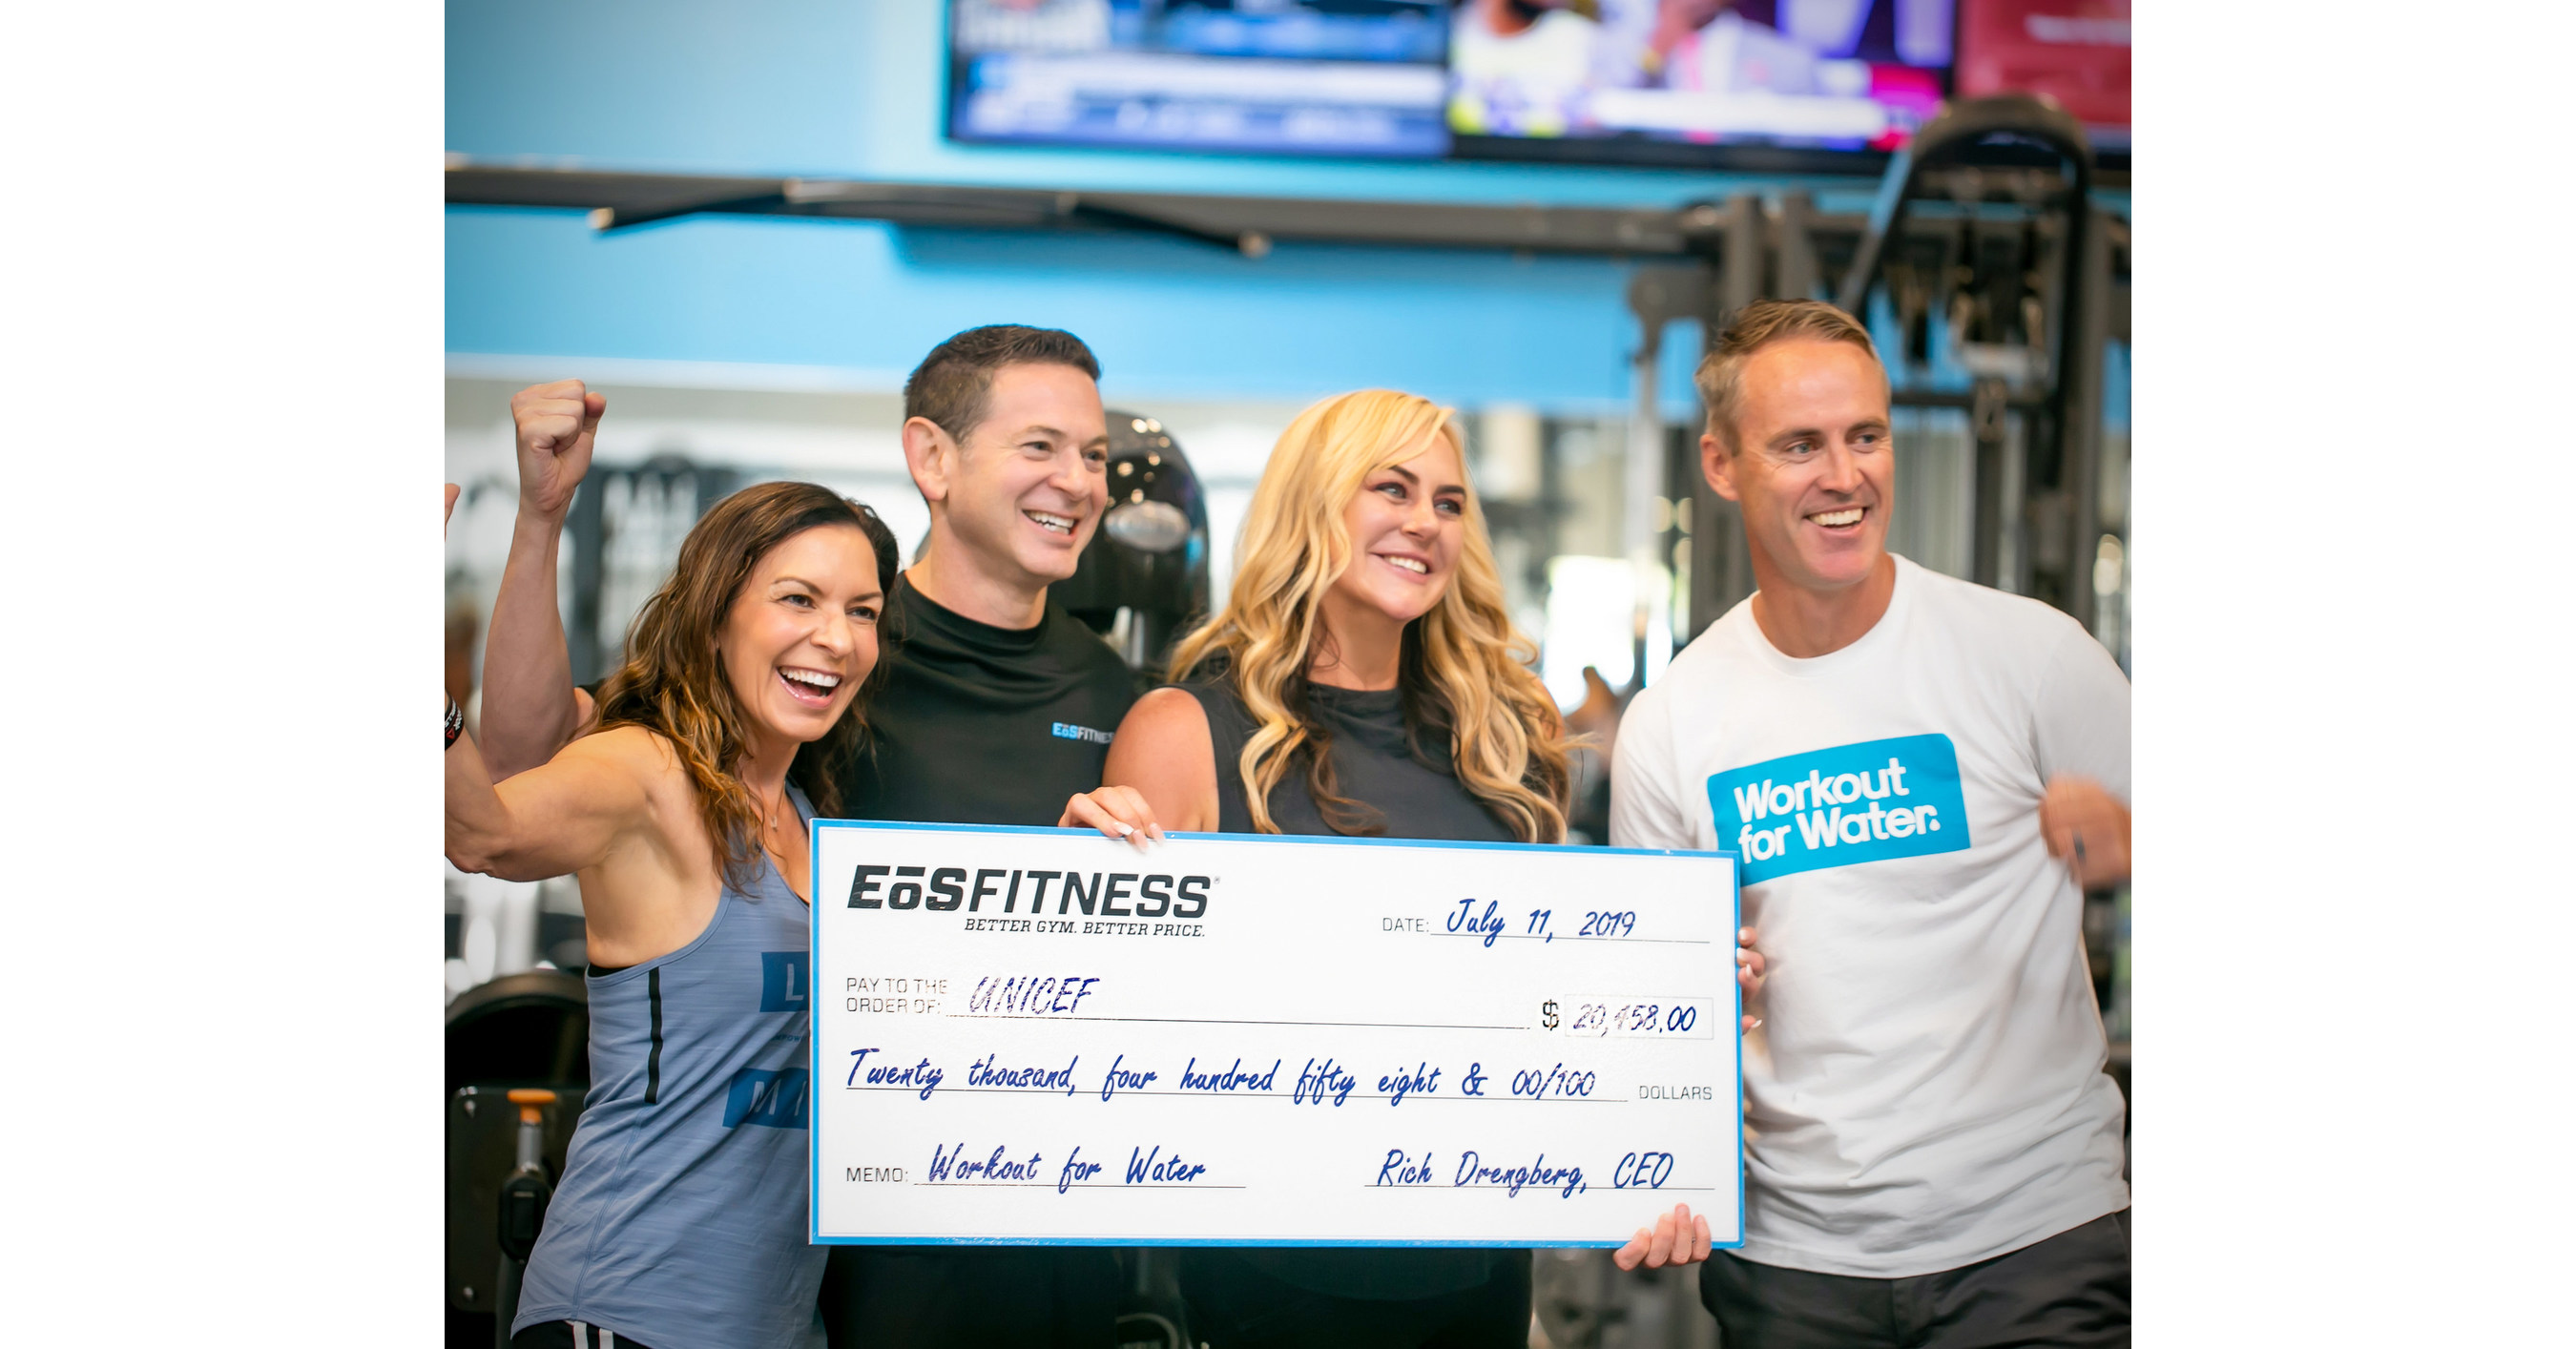 Eōs Fitness Donates Over 20 000 To Workout For Water